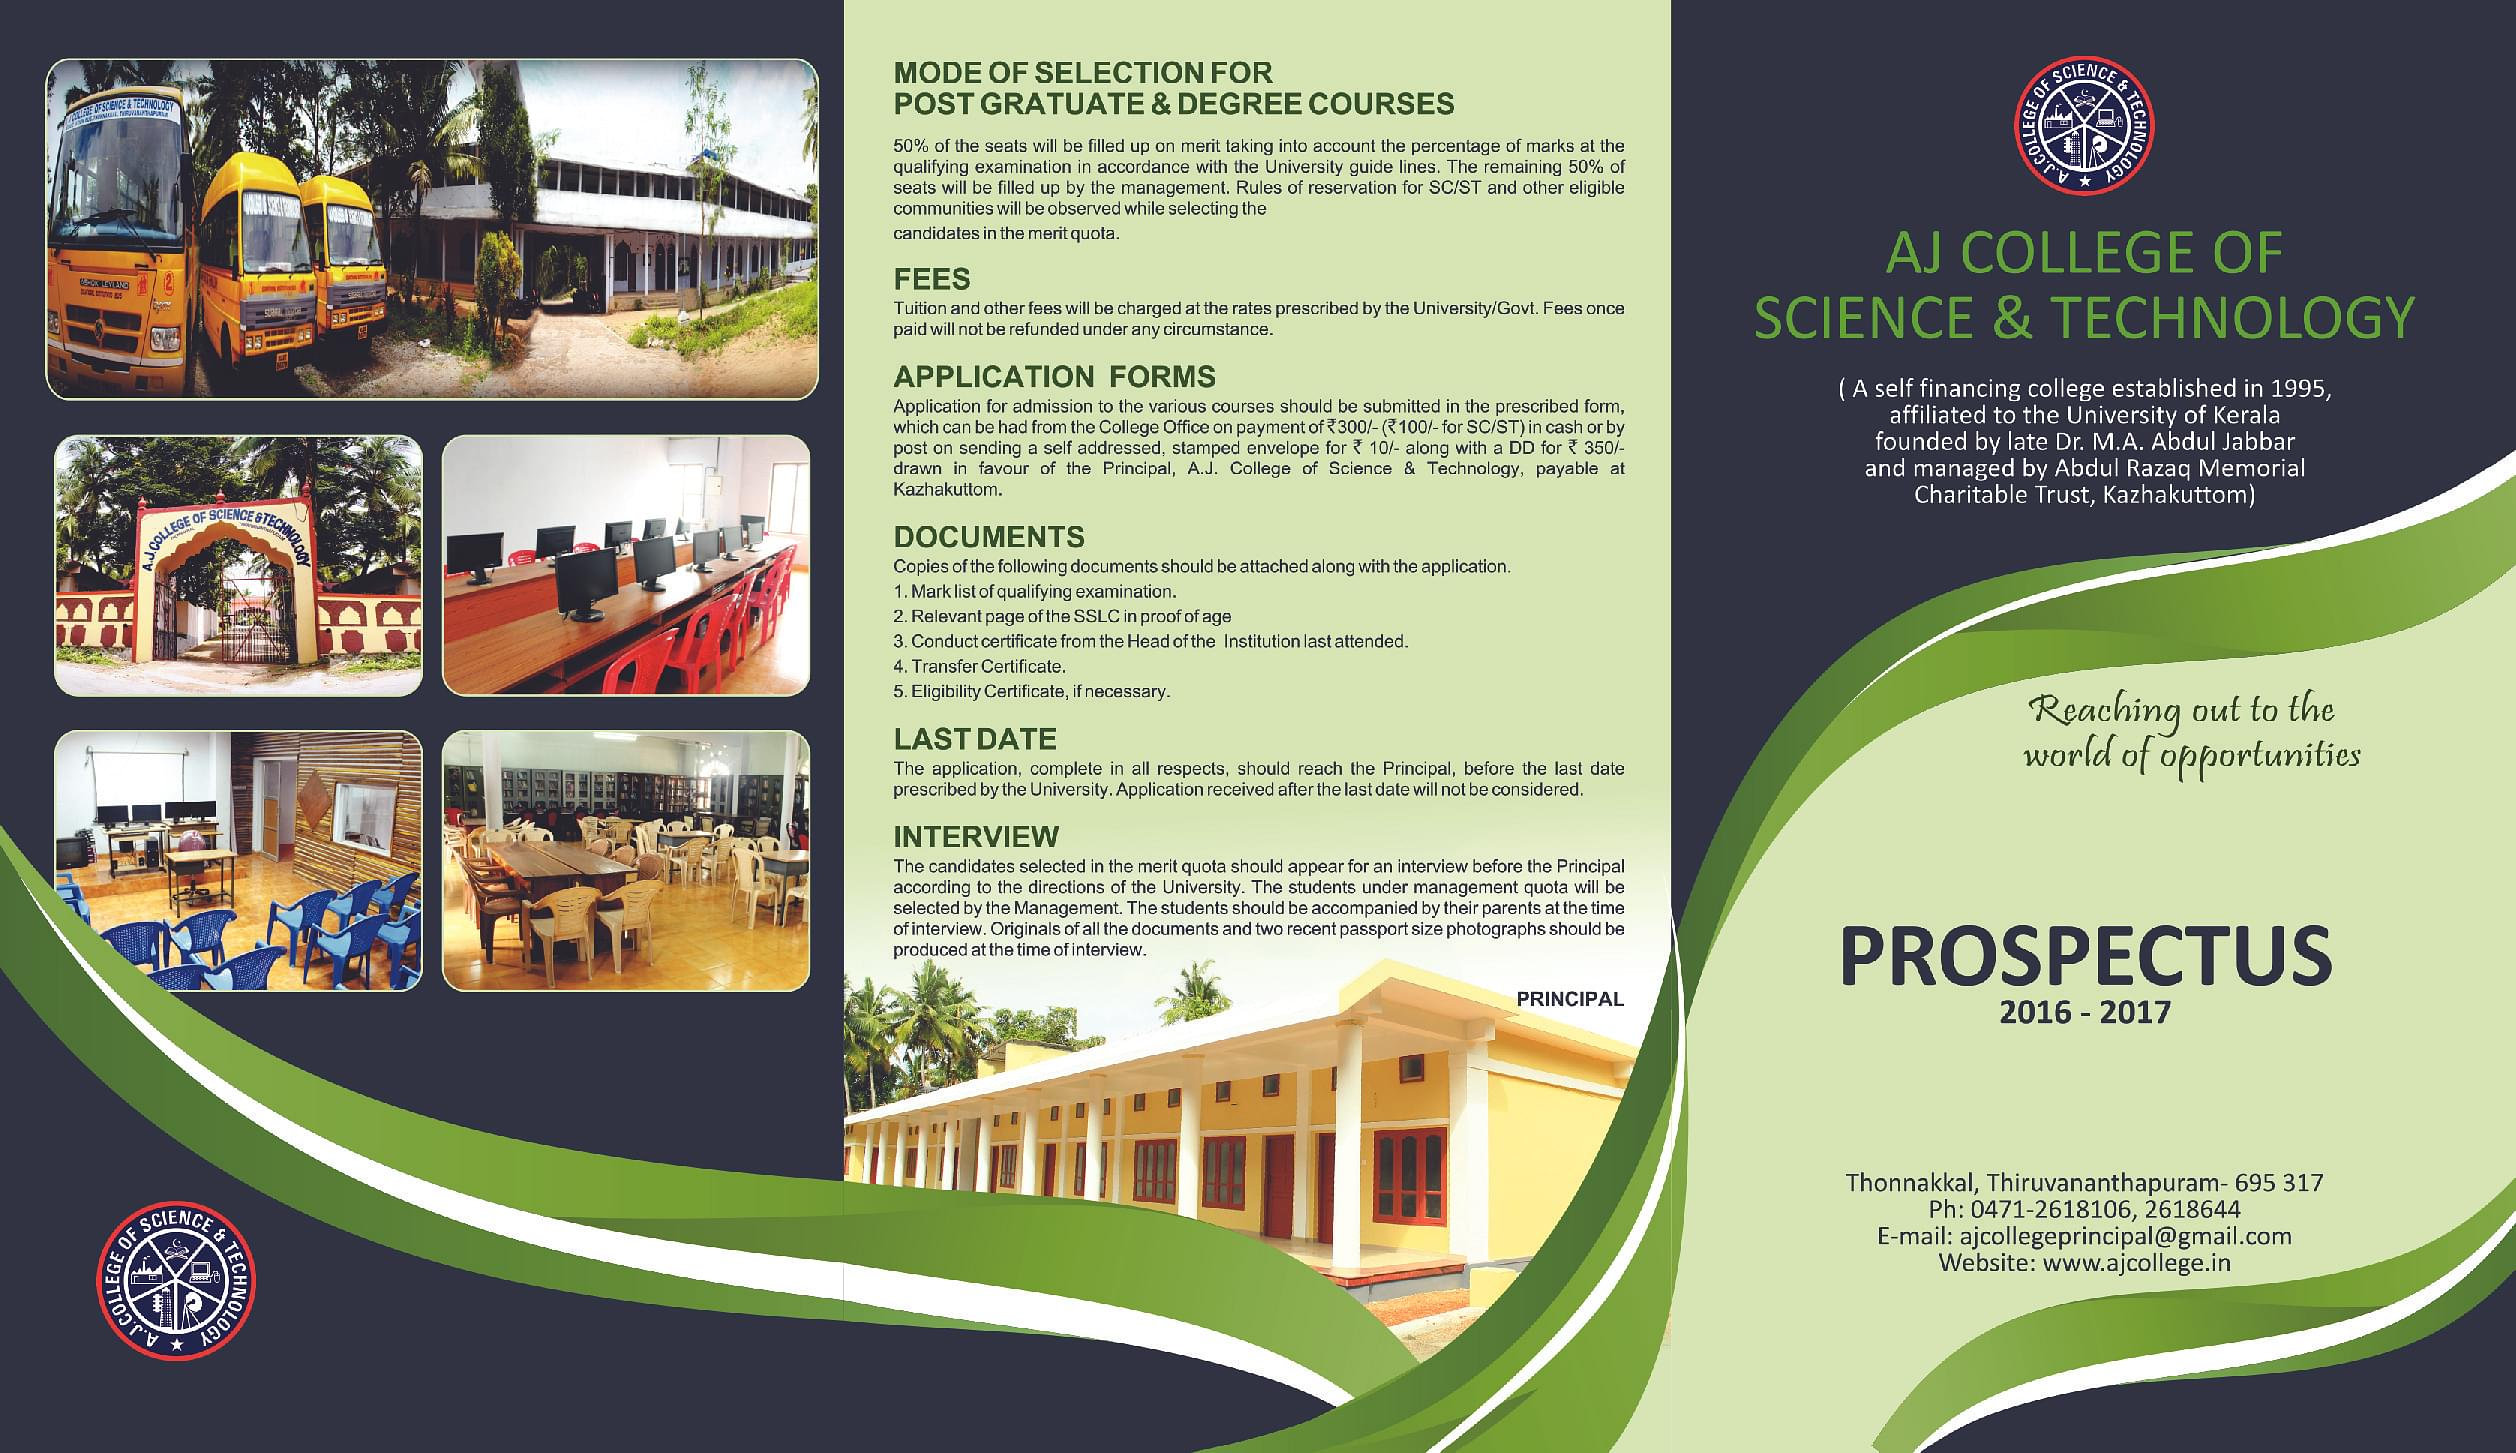 College Brochure | A J College Of Science And Technology Thonnakkal